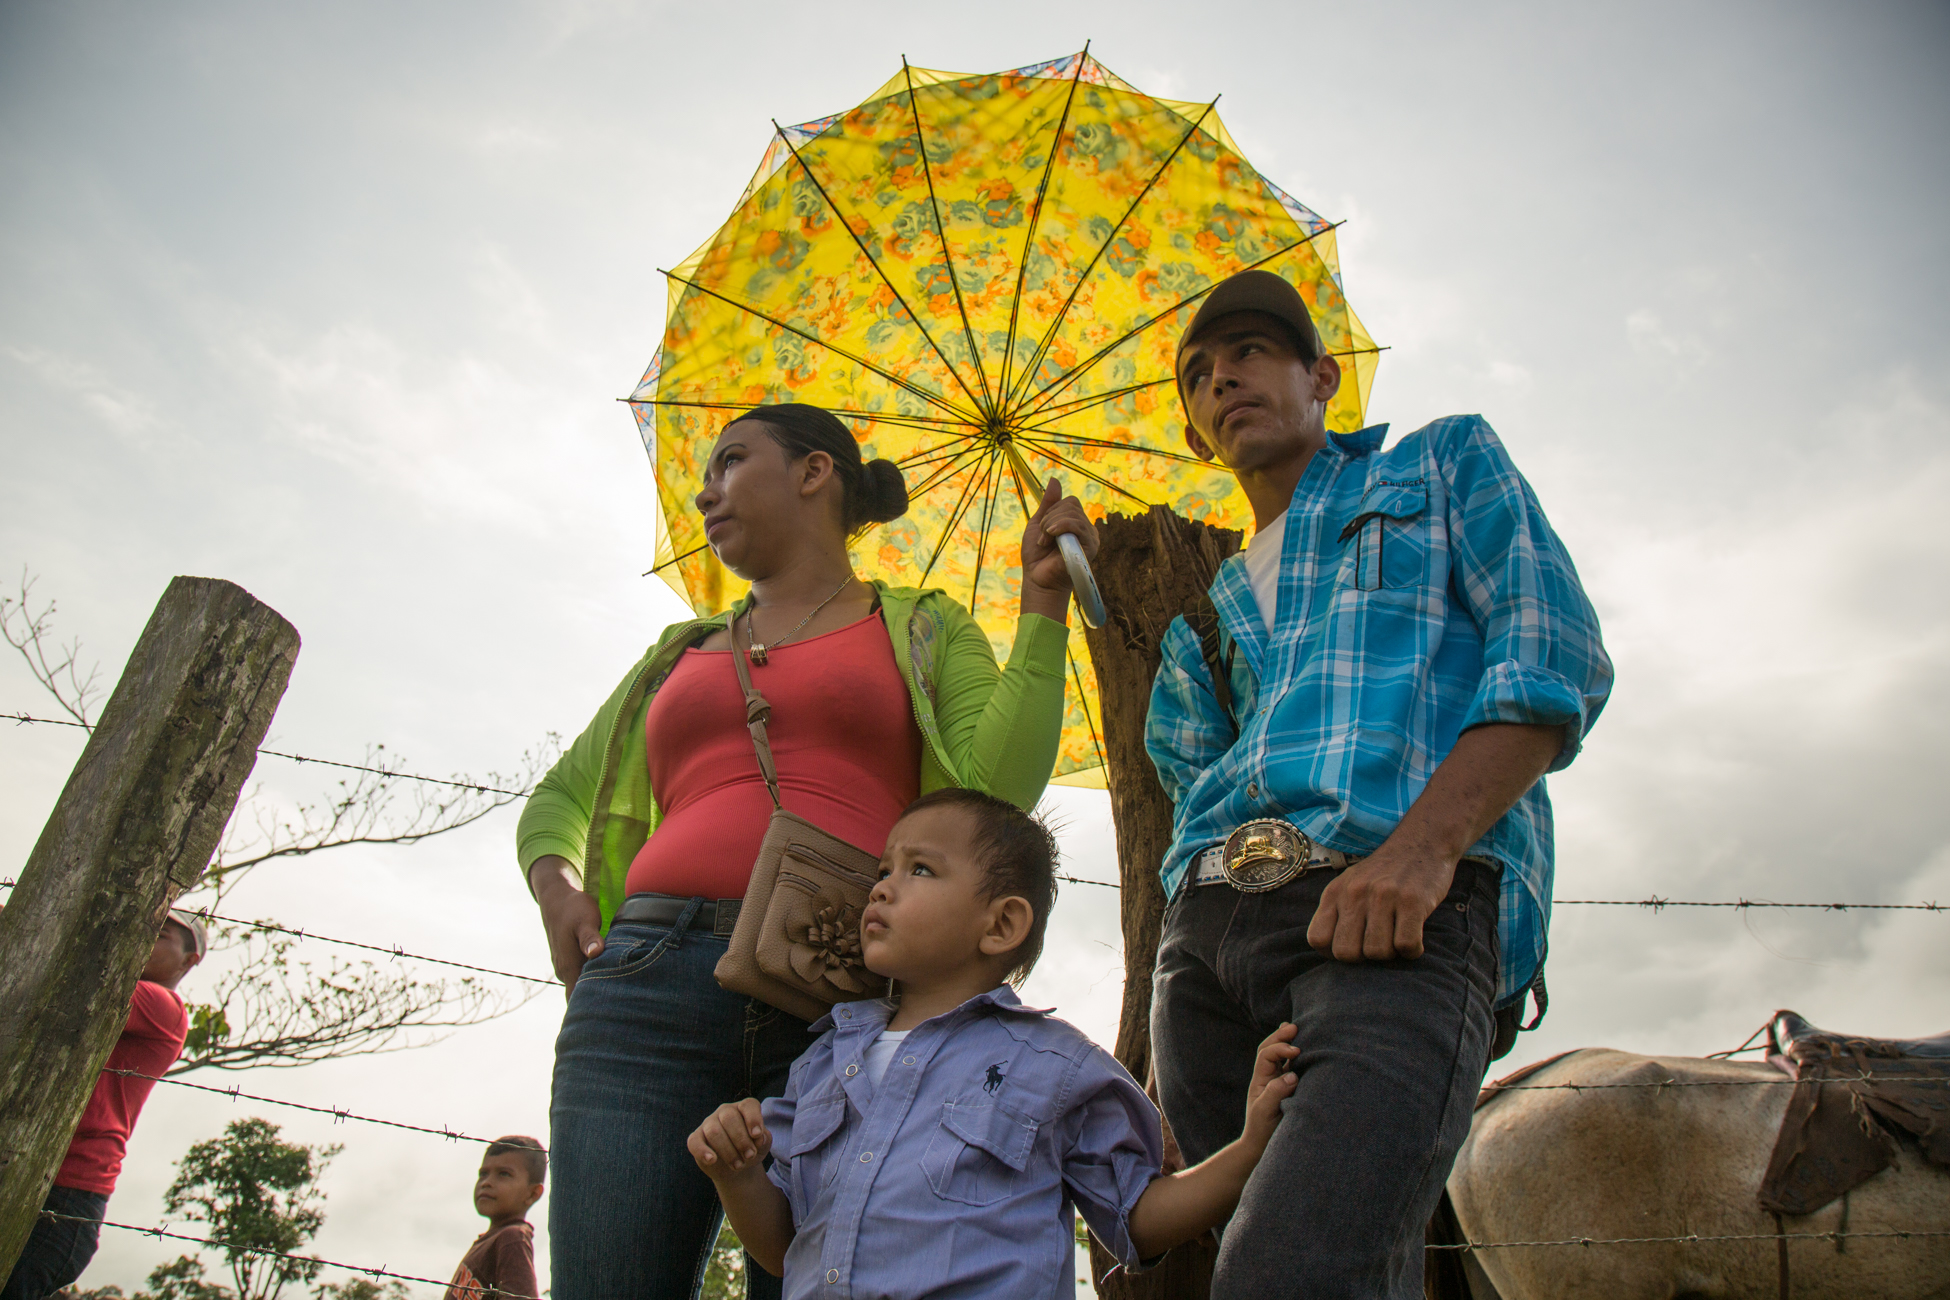 renor Jose Gonsales Rivas, 19 and his wife Irma Aguilar Garcia with their son at a market day in Palo Bonito where they sell goods on the banks of the Punta Gorda river in the early morning. If the Gran Canal project were to go forward, the river would be dredged as a shipping lane for cargo ships to pass from the Caribbean to the Pacific, removing farmer and indigenous communities.